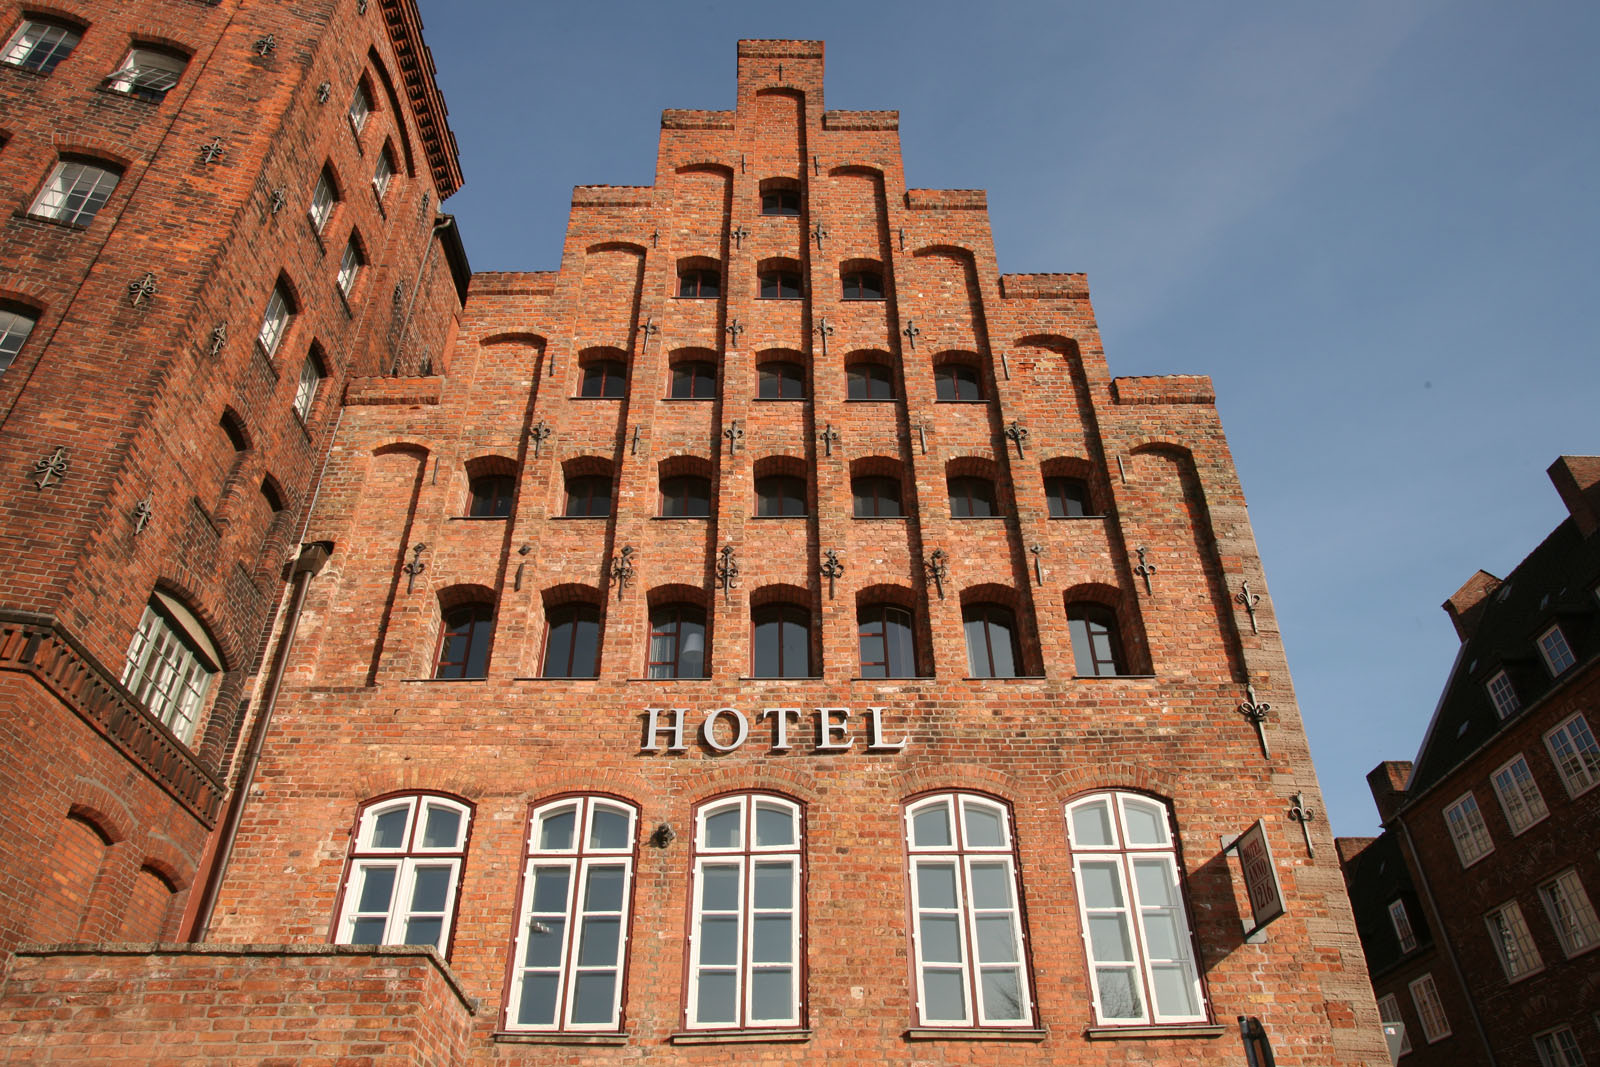 Hotel Building Made Of Brick With Gabled Roof